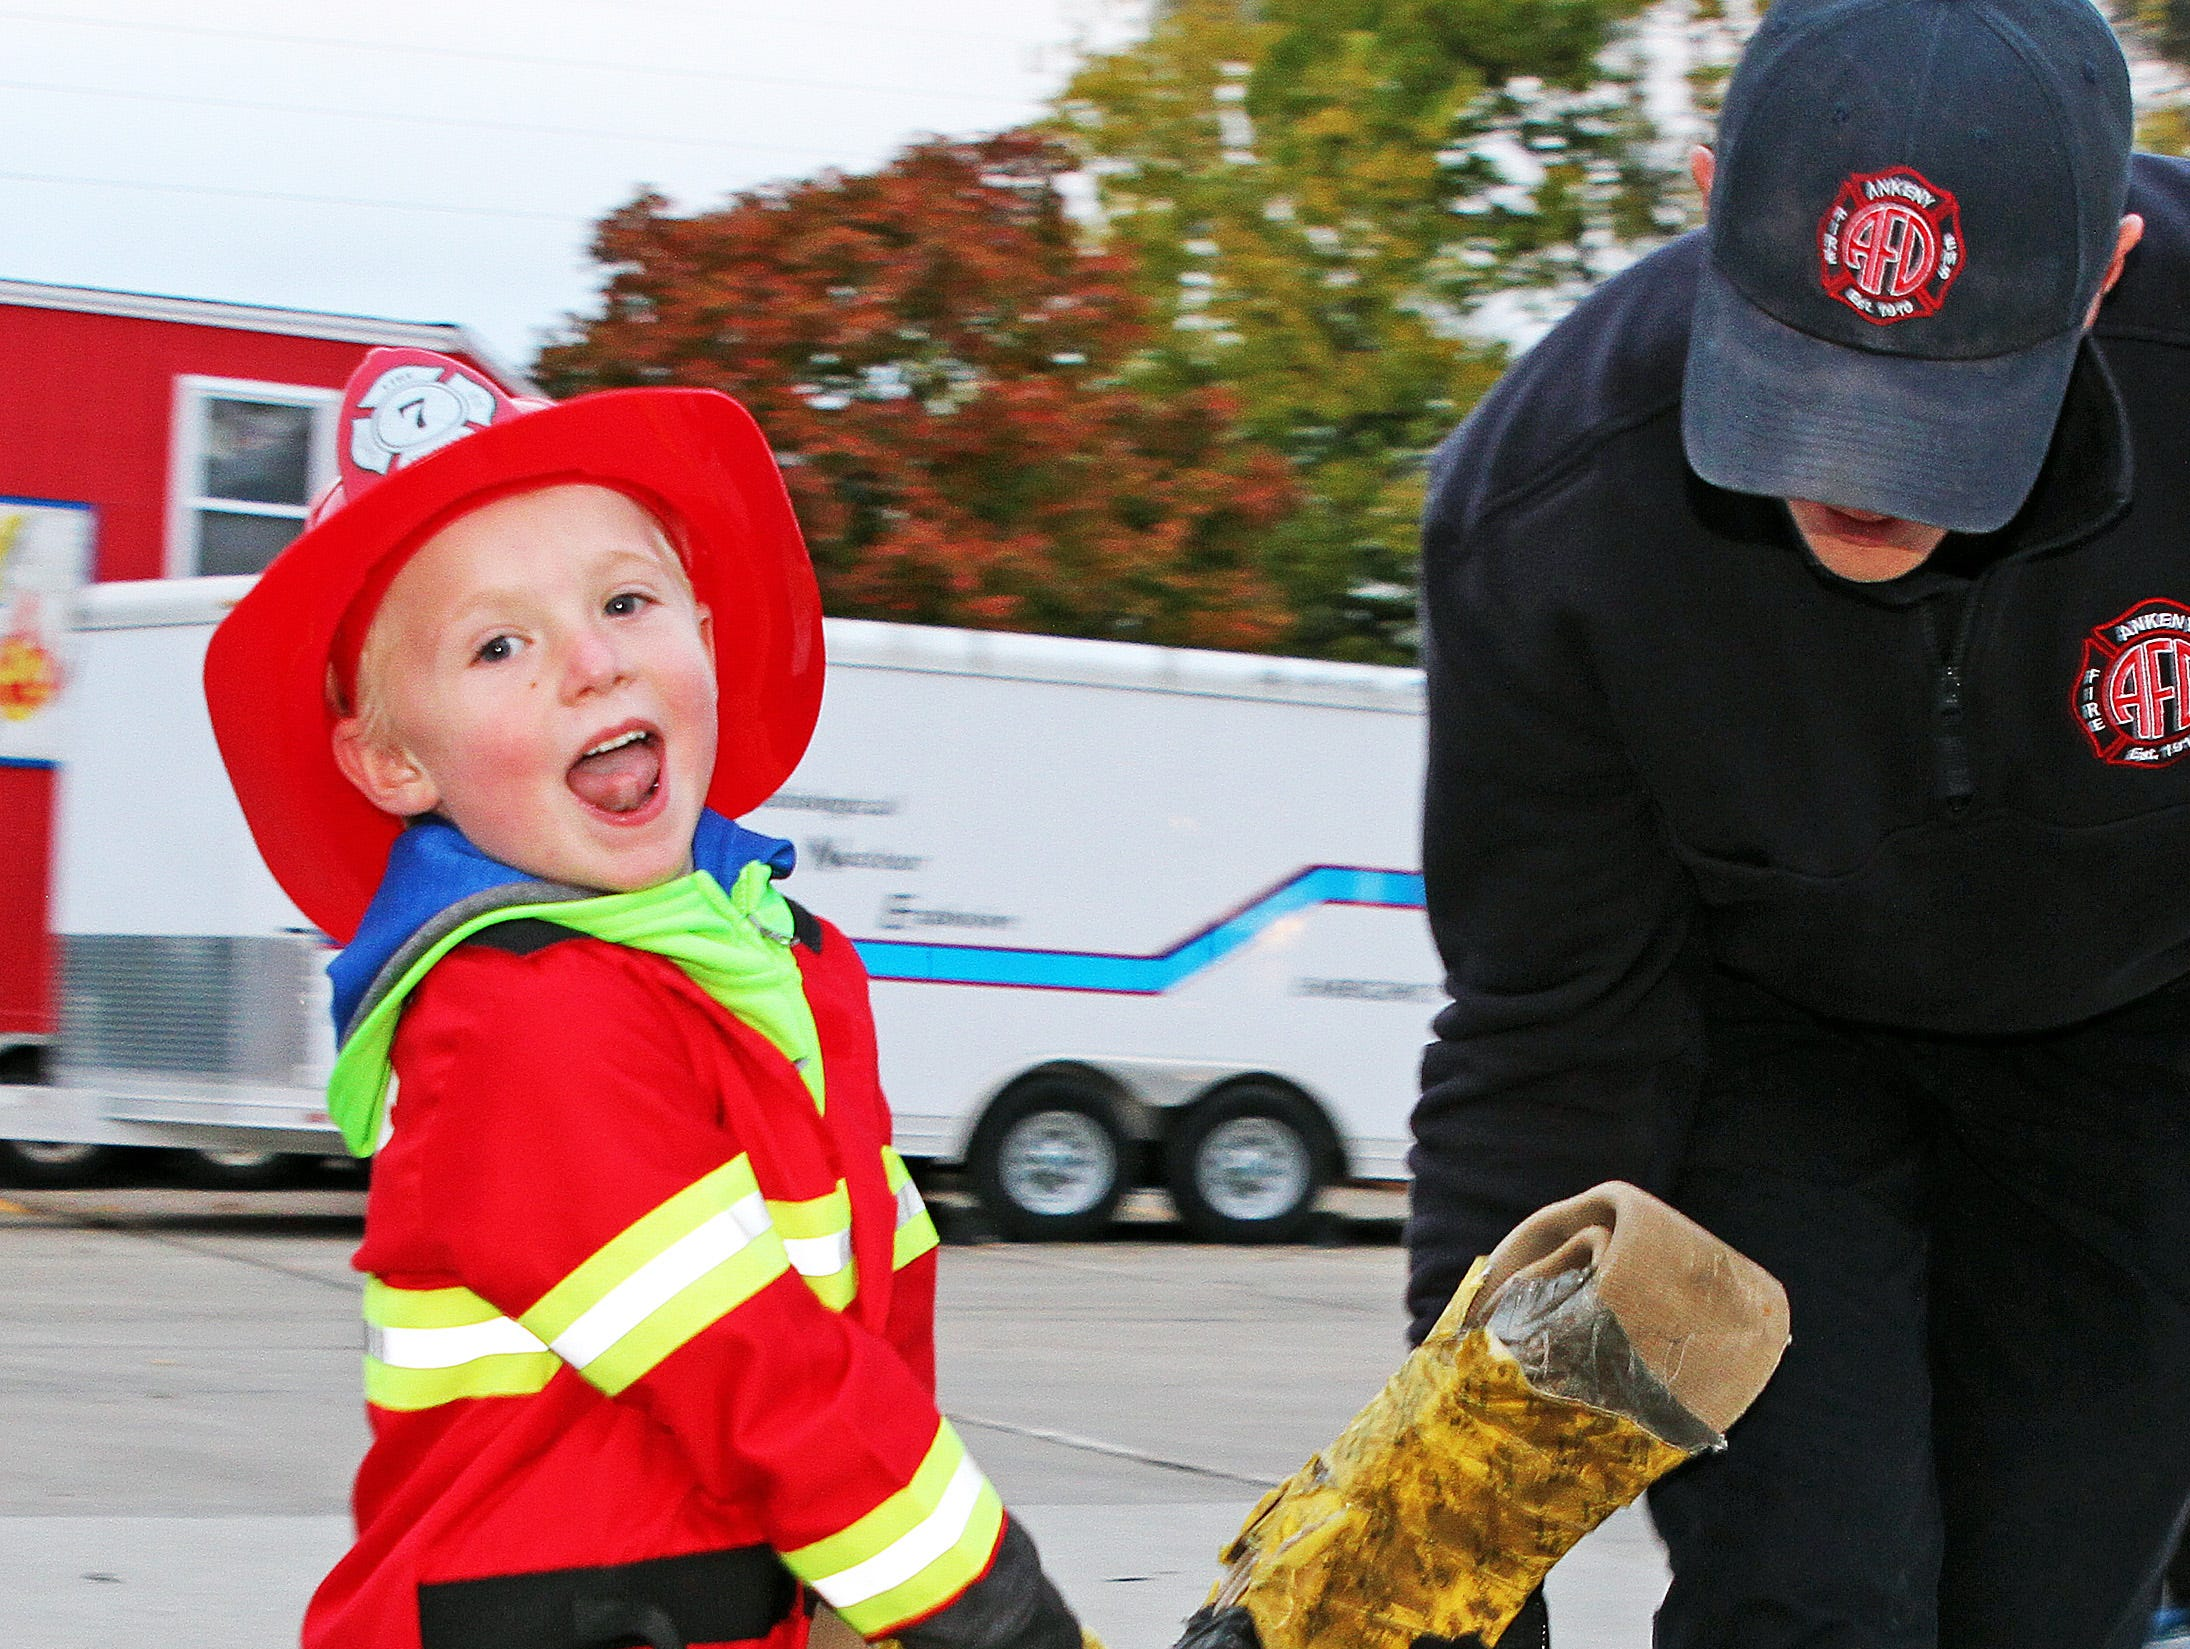 Lincoln Howard, 5, of Ankeny enjoys the Kids' Firefighter Challenge during the Ankeny Fire Department's Fire Prevention Week Open House on Wednesday, Oct. 10, 2018 at Fire Station #1, 120 N.W. Ash Dr in Ankeny. The Open House includes a variety of educational, family-oriented hands-on activities for all ages. Residents can learn more about the power of fire prevention and technologies available to protect their own families from fire.